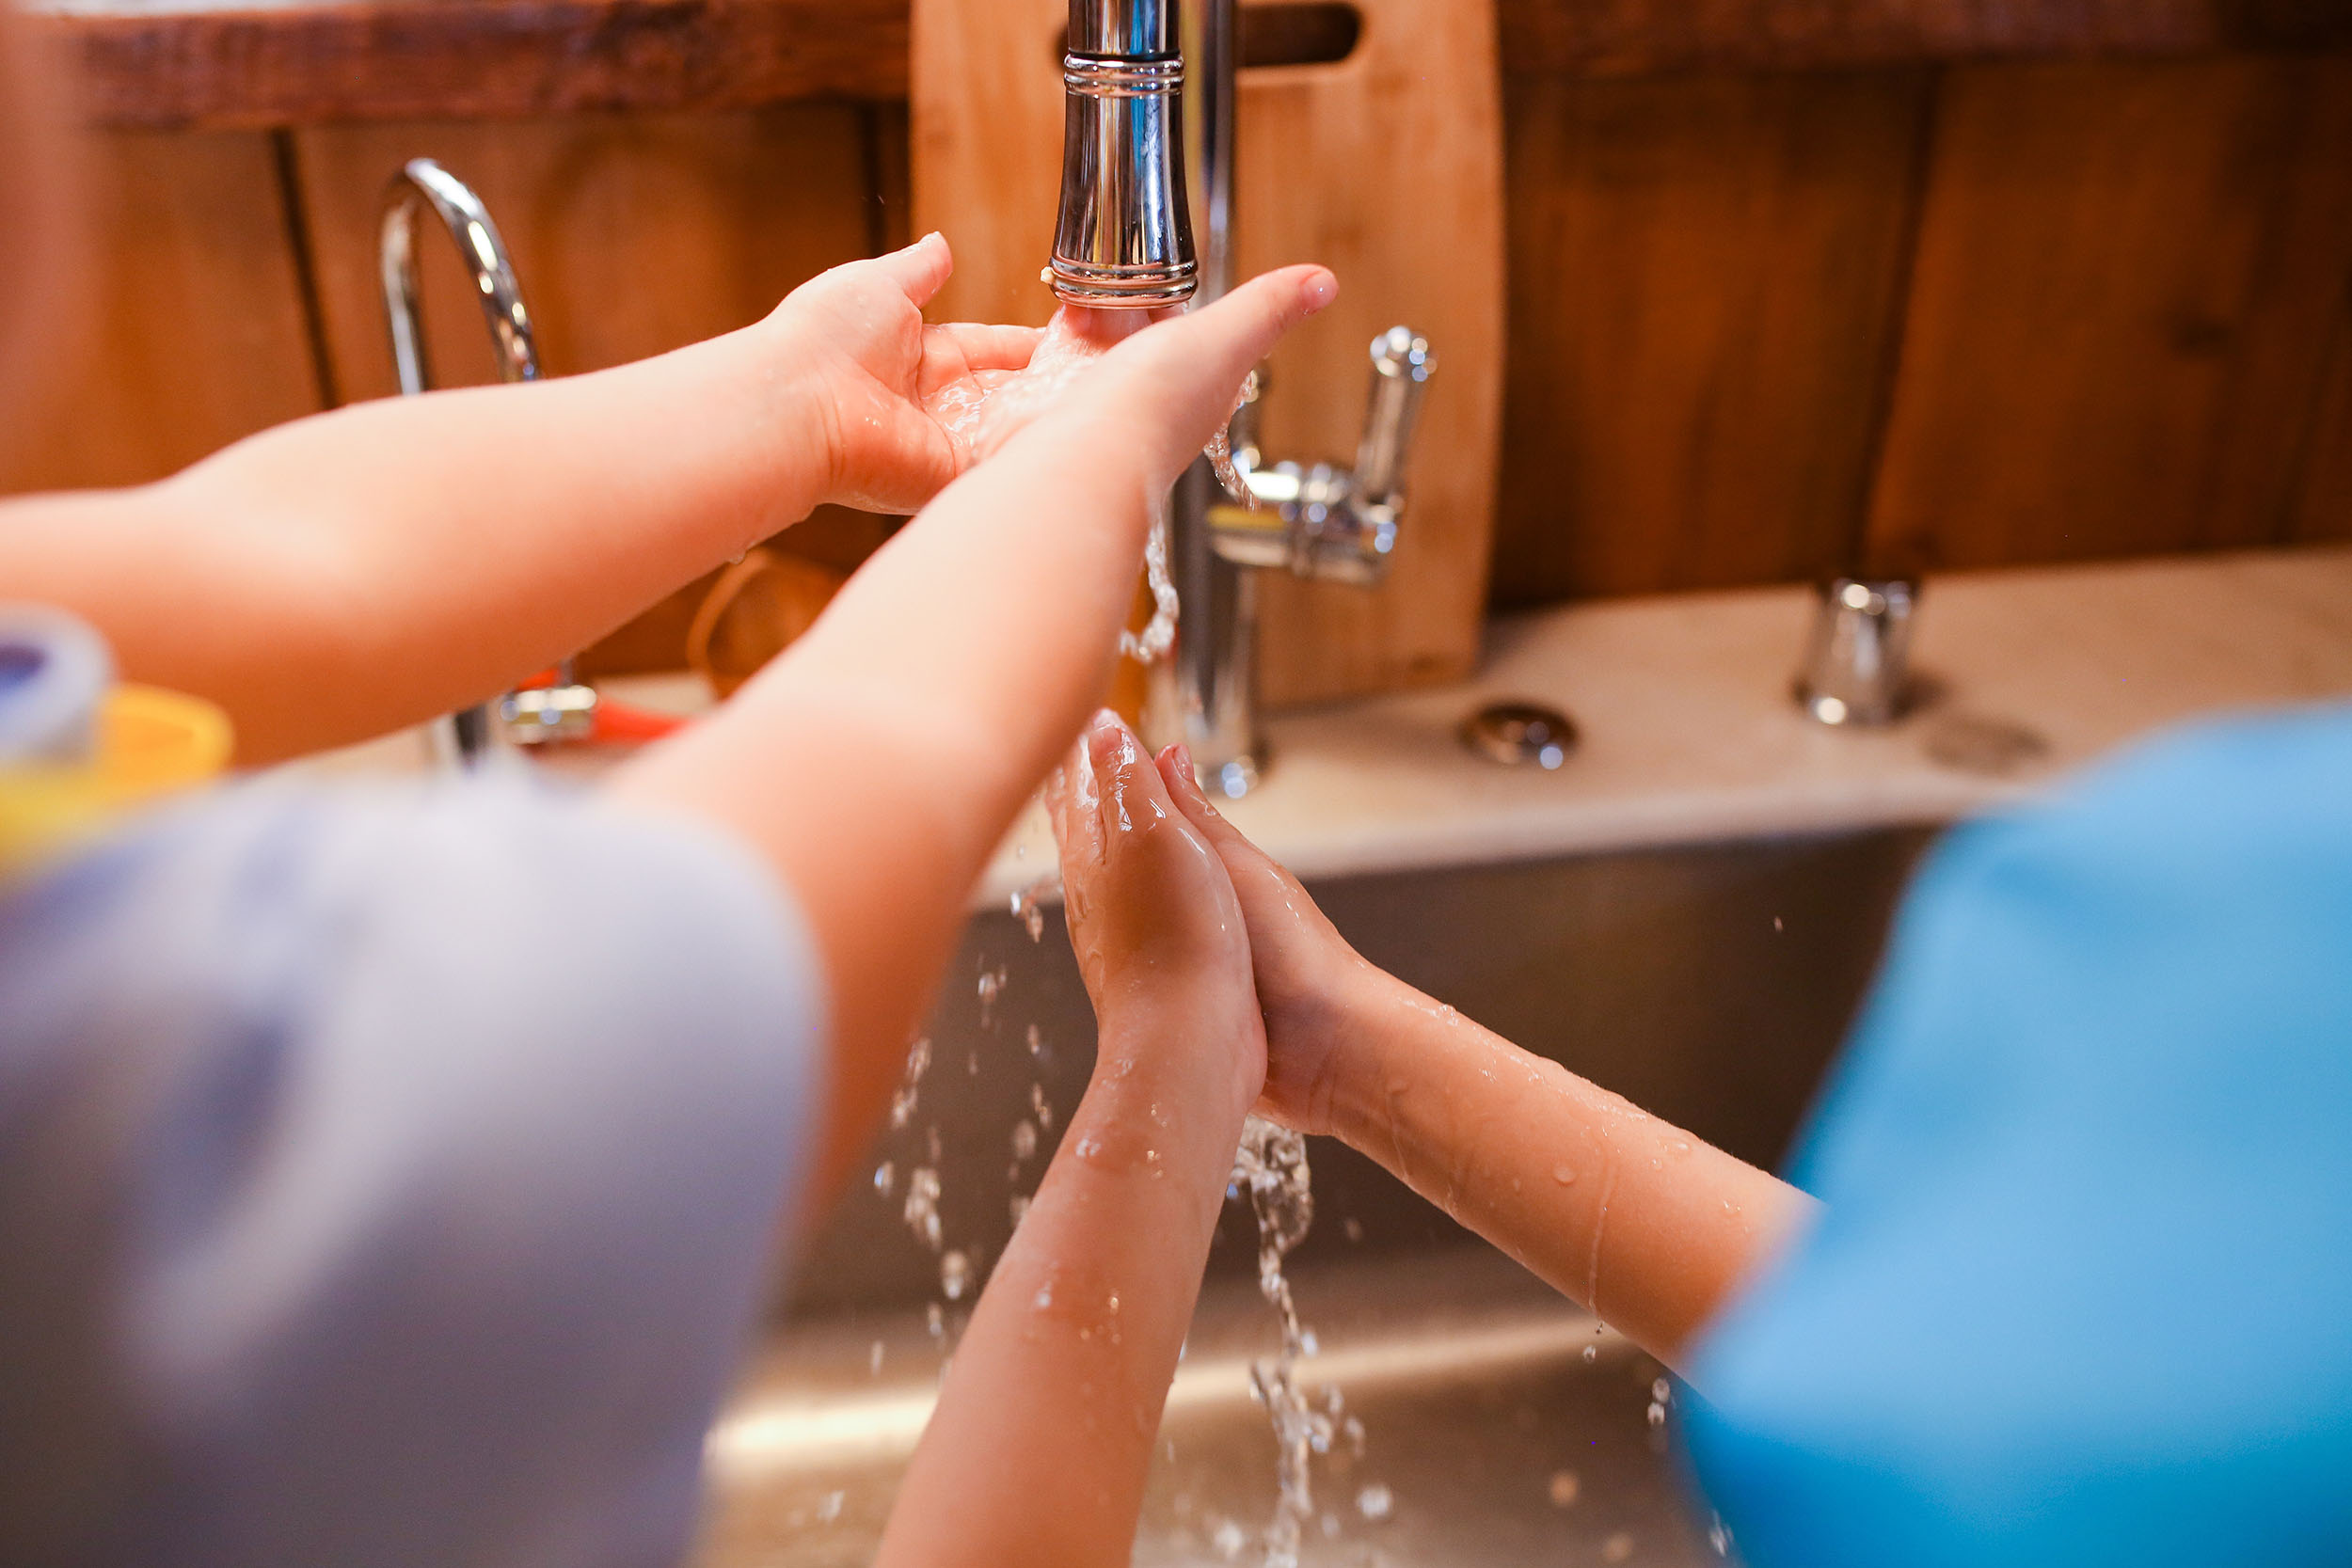 Research reveals water consumption changes during pandemic